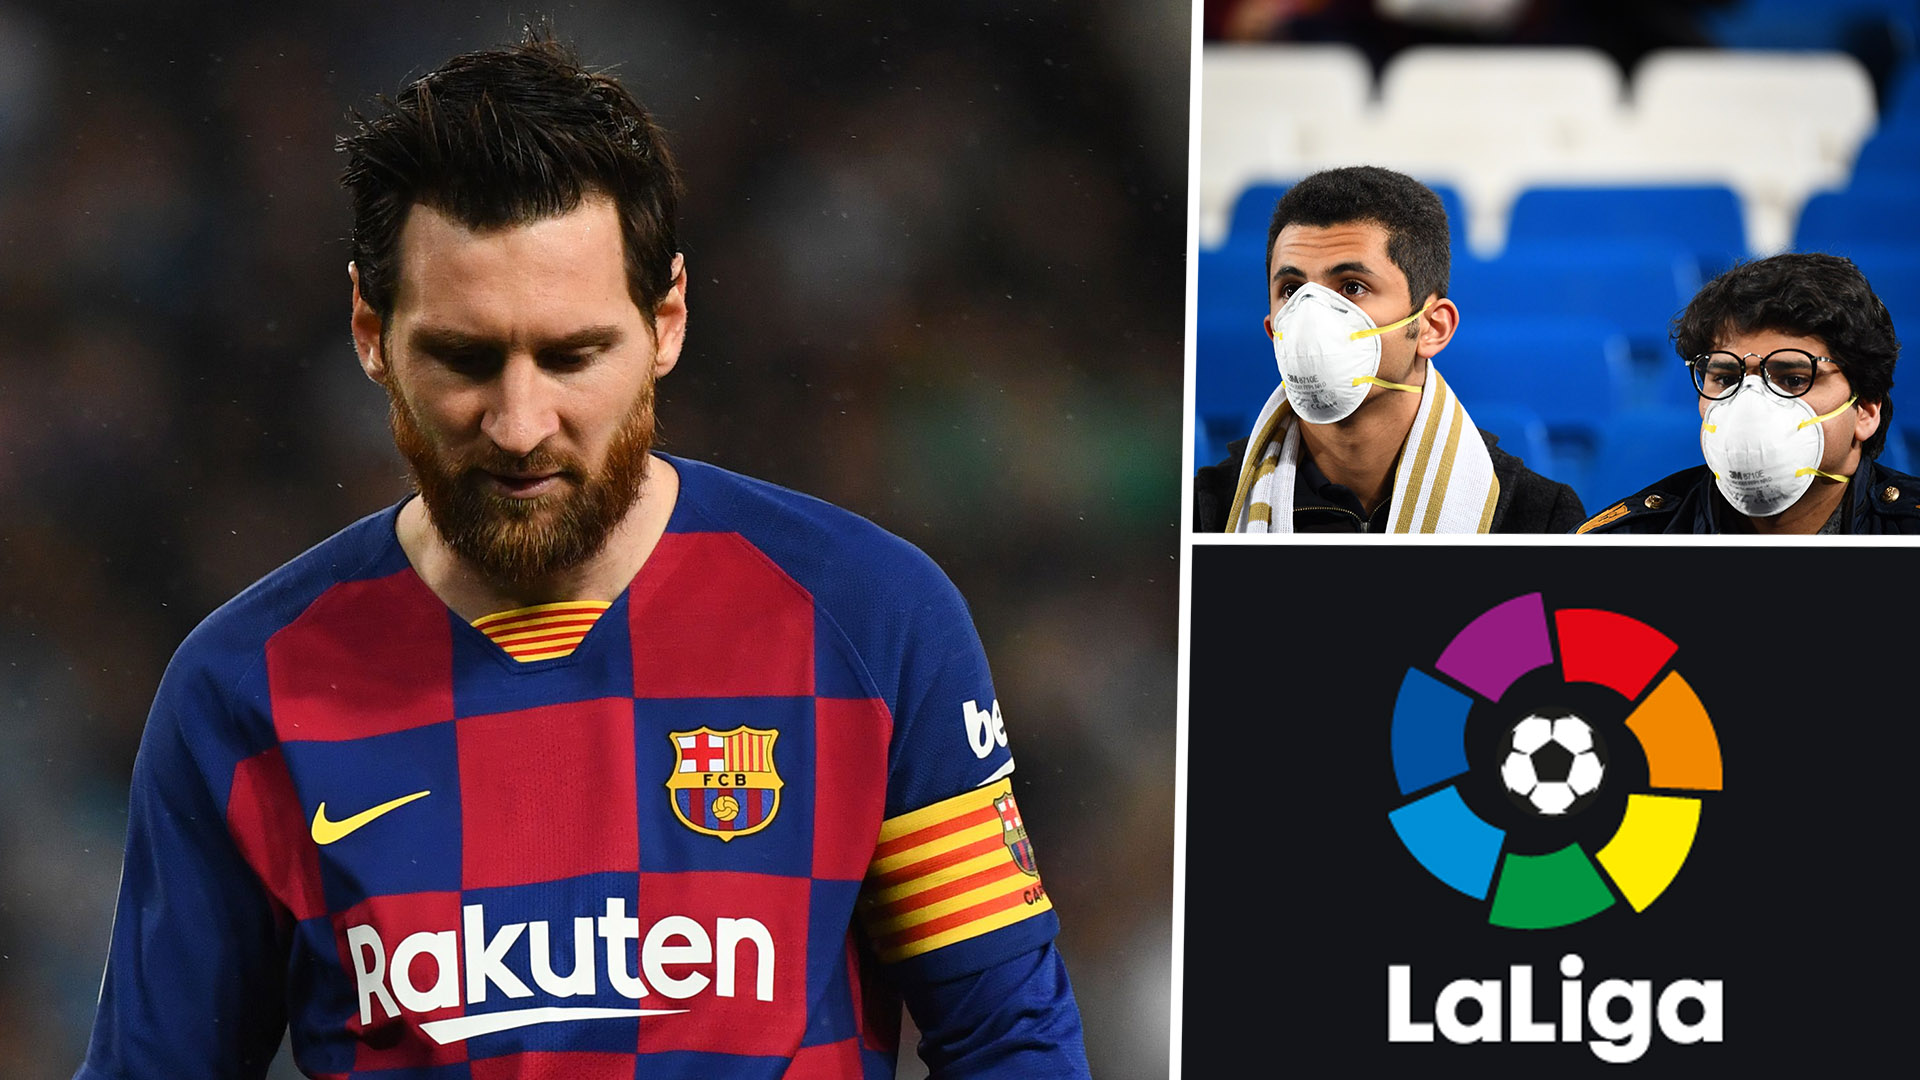 La Liga might not return before summer - Spain's health minister ...